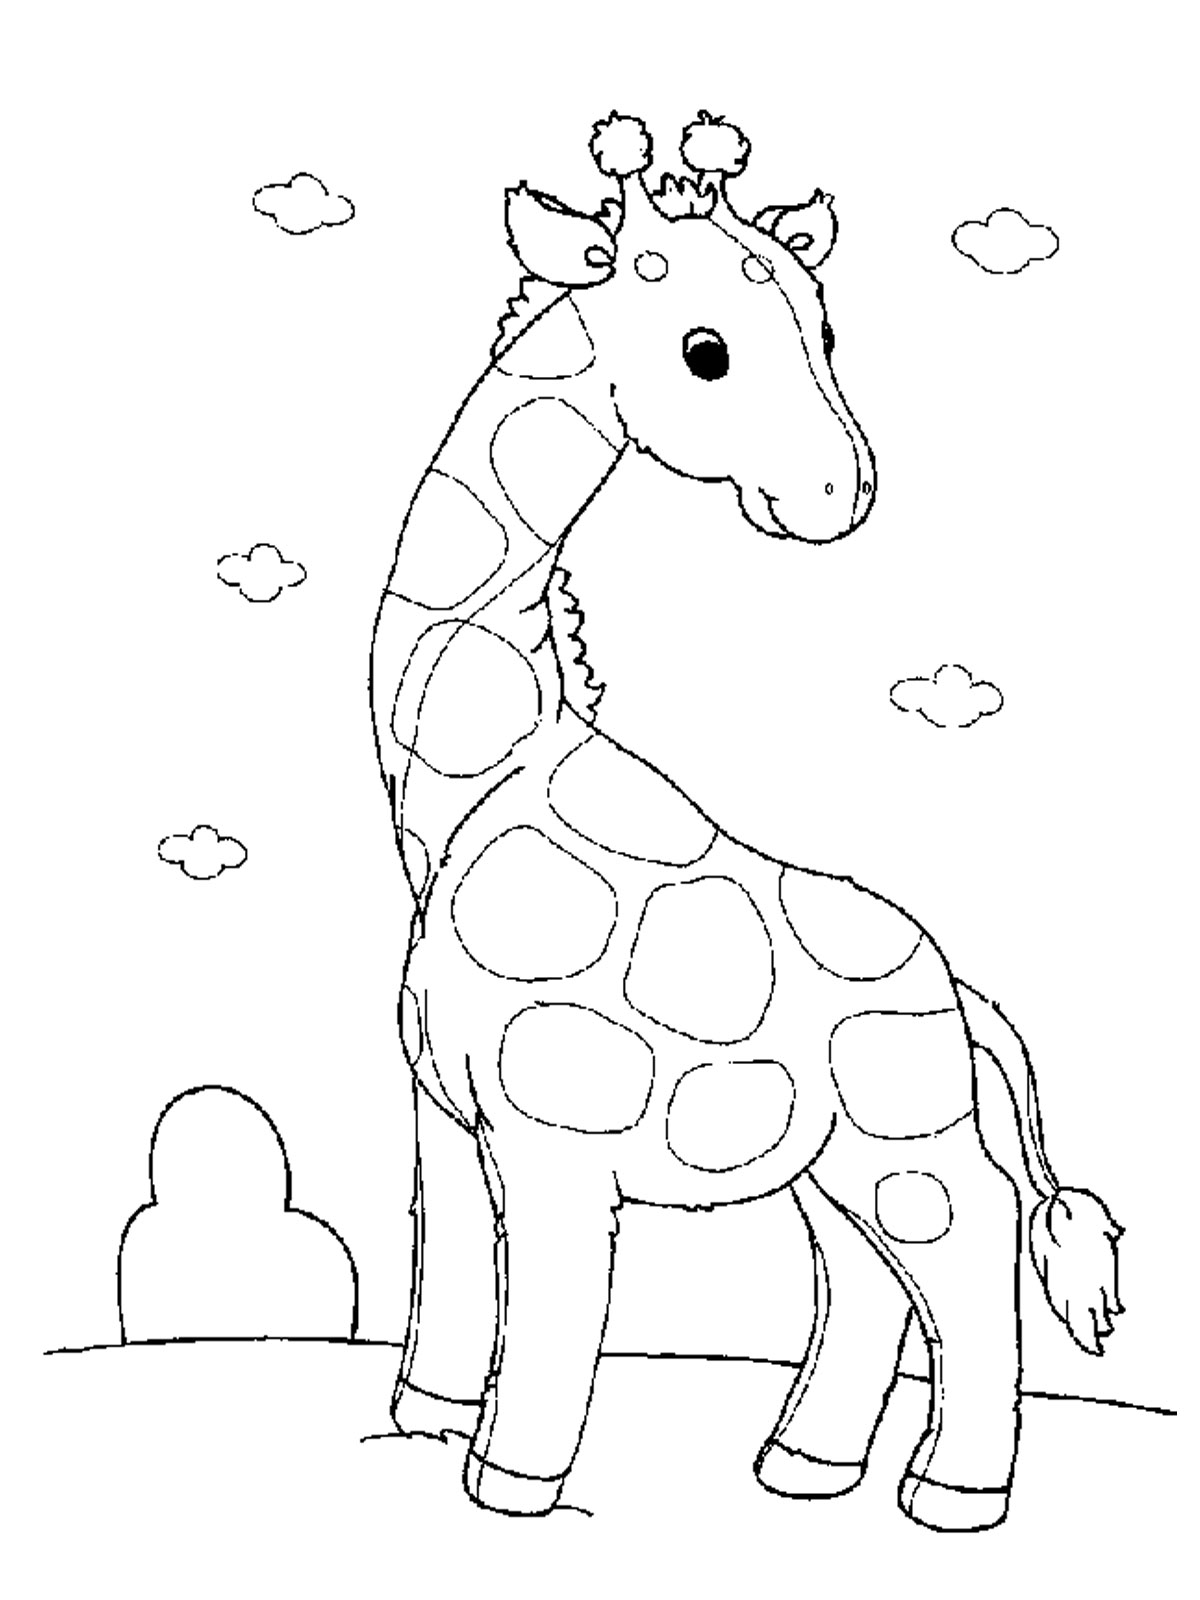 Baby Animal Coloring Pages Realistic Coloring Pages Free Printable Coloring Pages Of Animals